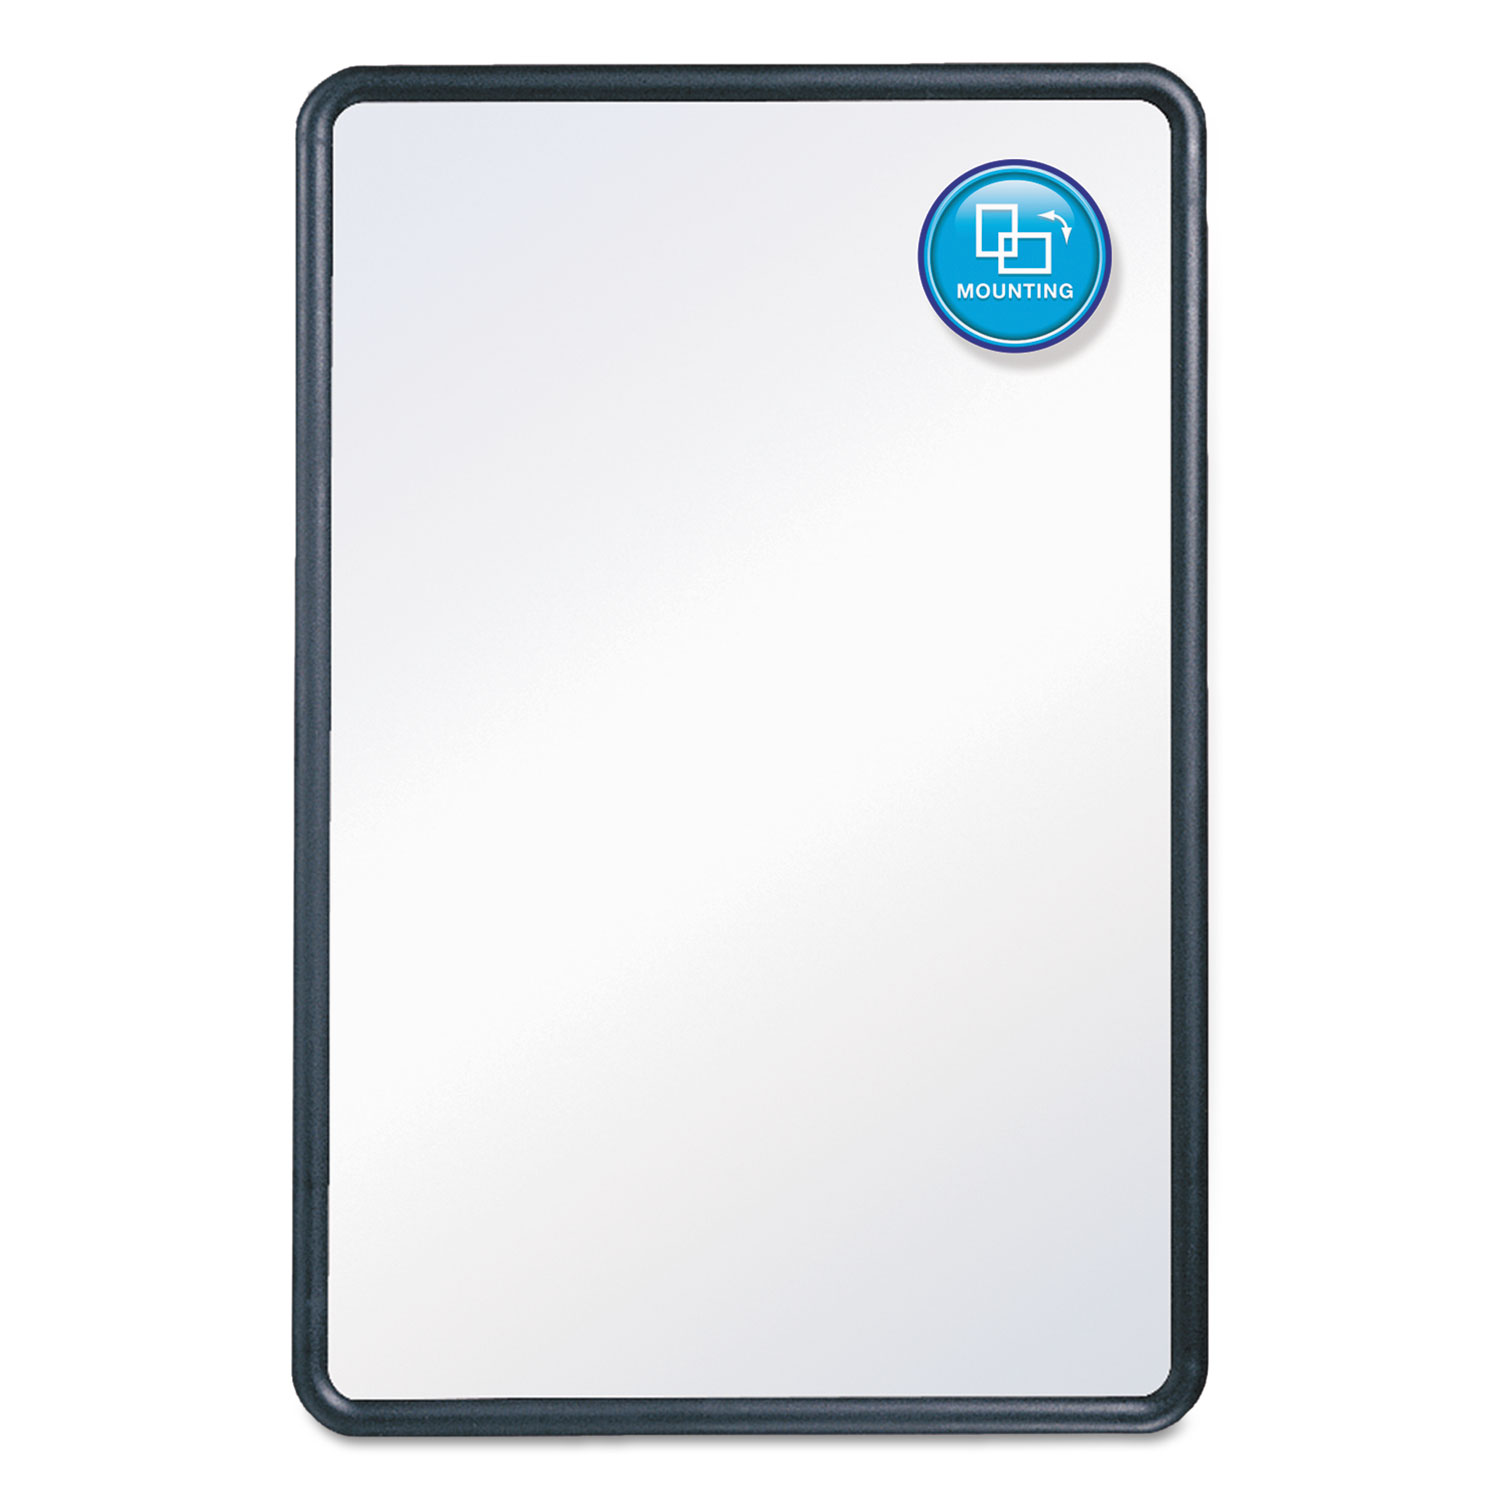 Picture of Contour Dry-Erase Board, Melamine, 24 x 18, White Surface, Black Frame